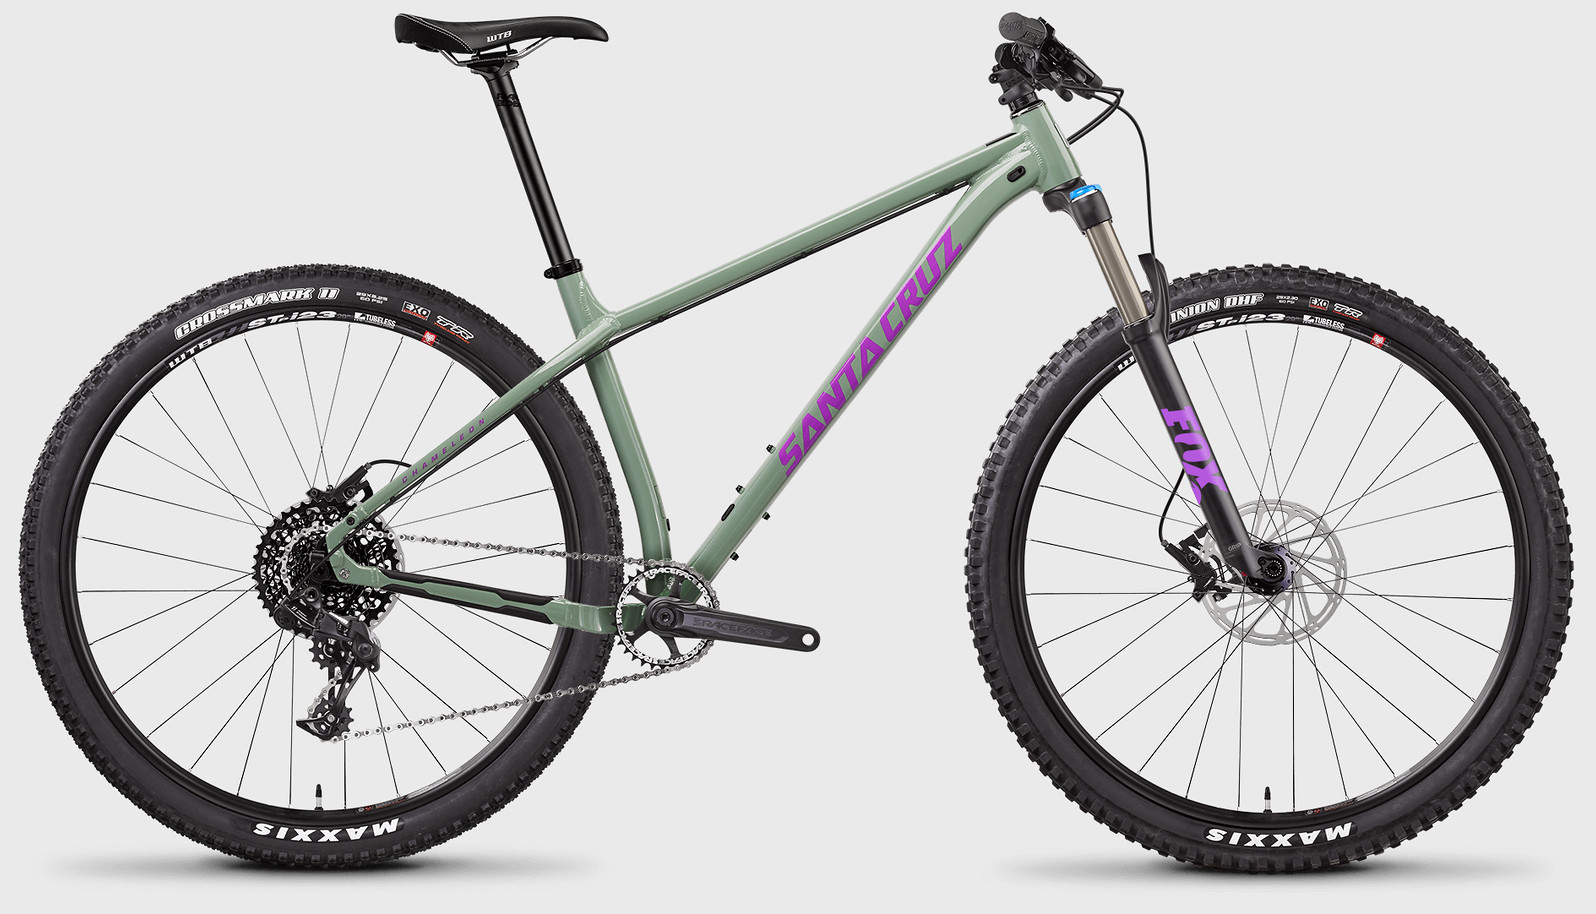 2017 Santa Cruz Chameleon R1 Bike